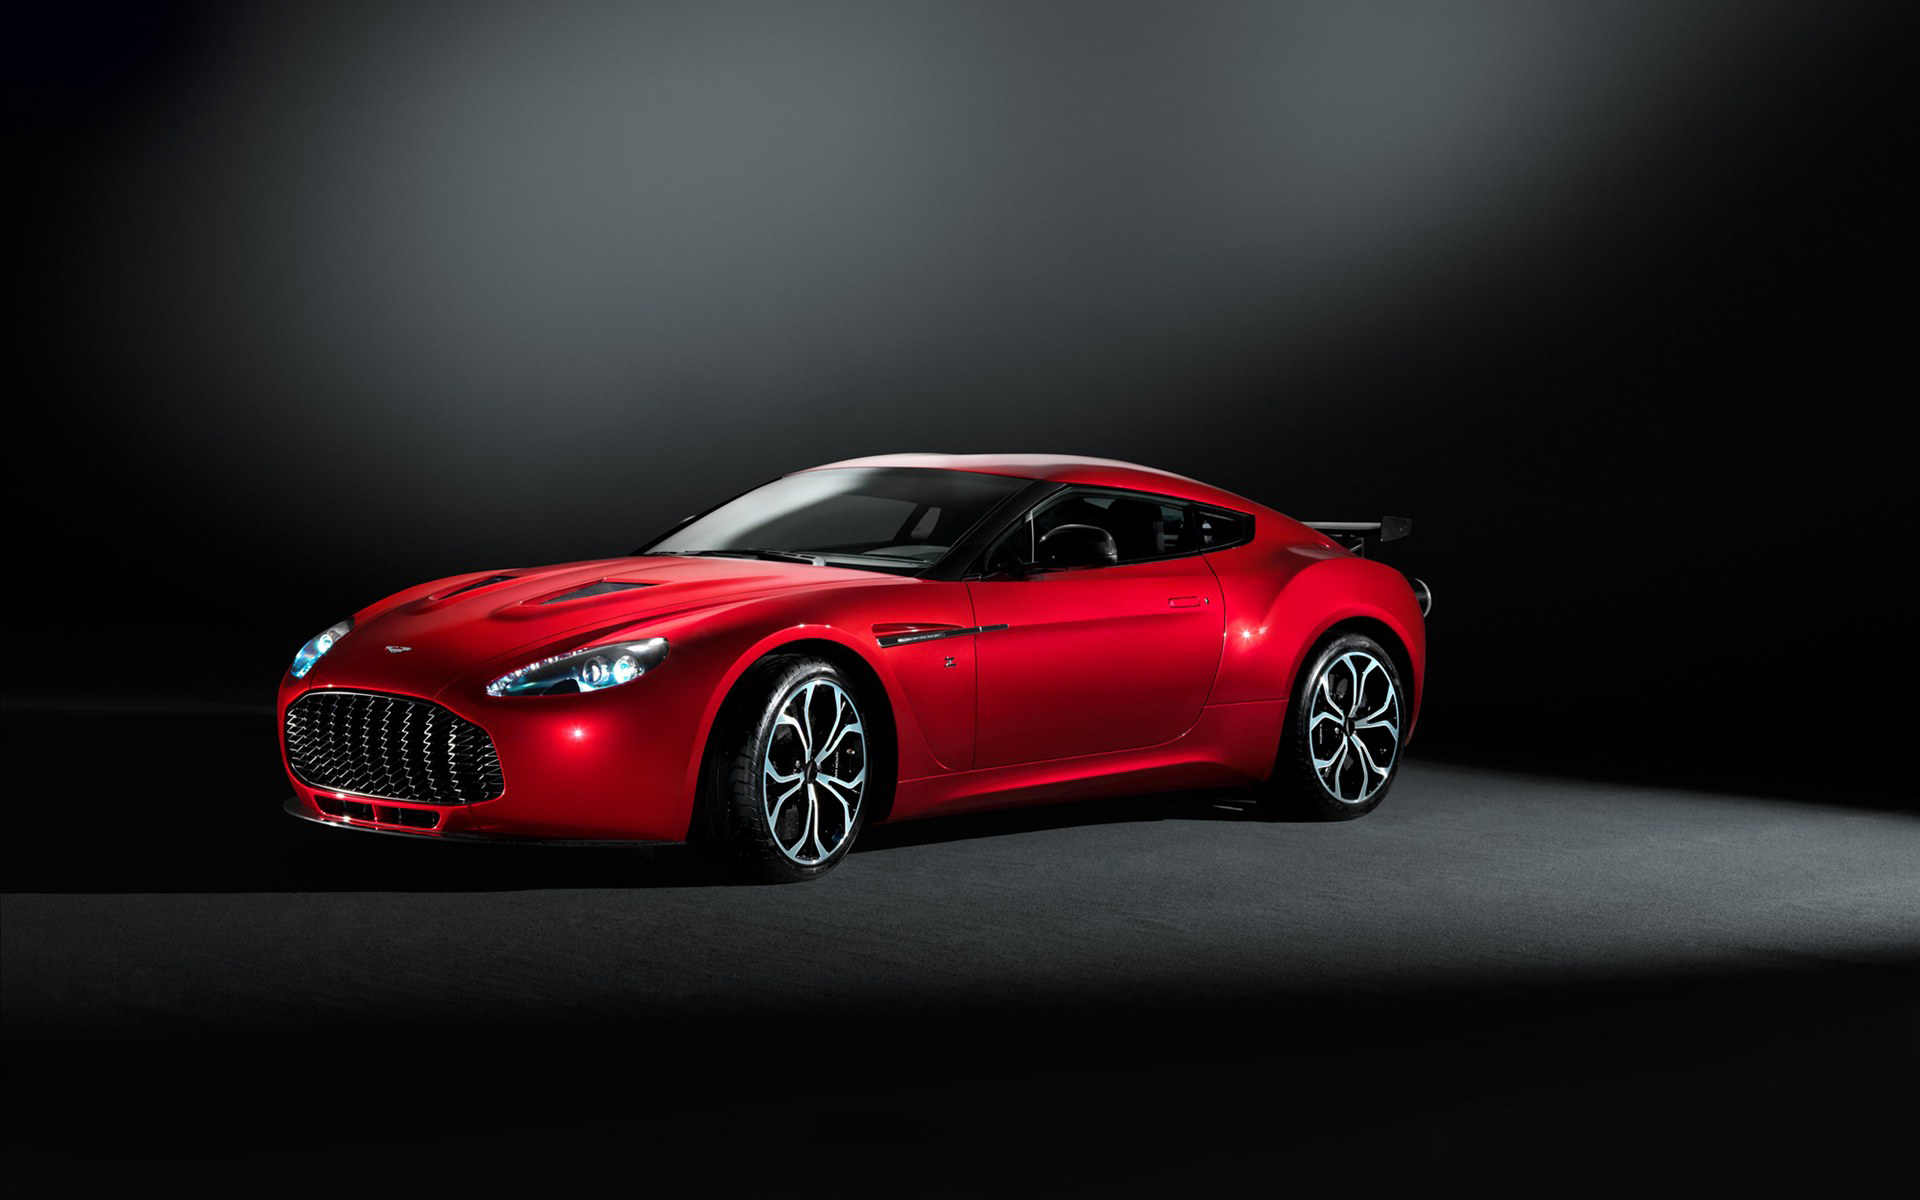 2013 aston martin v12 zagato wallpaper | hd car wallpapers | id #2453